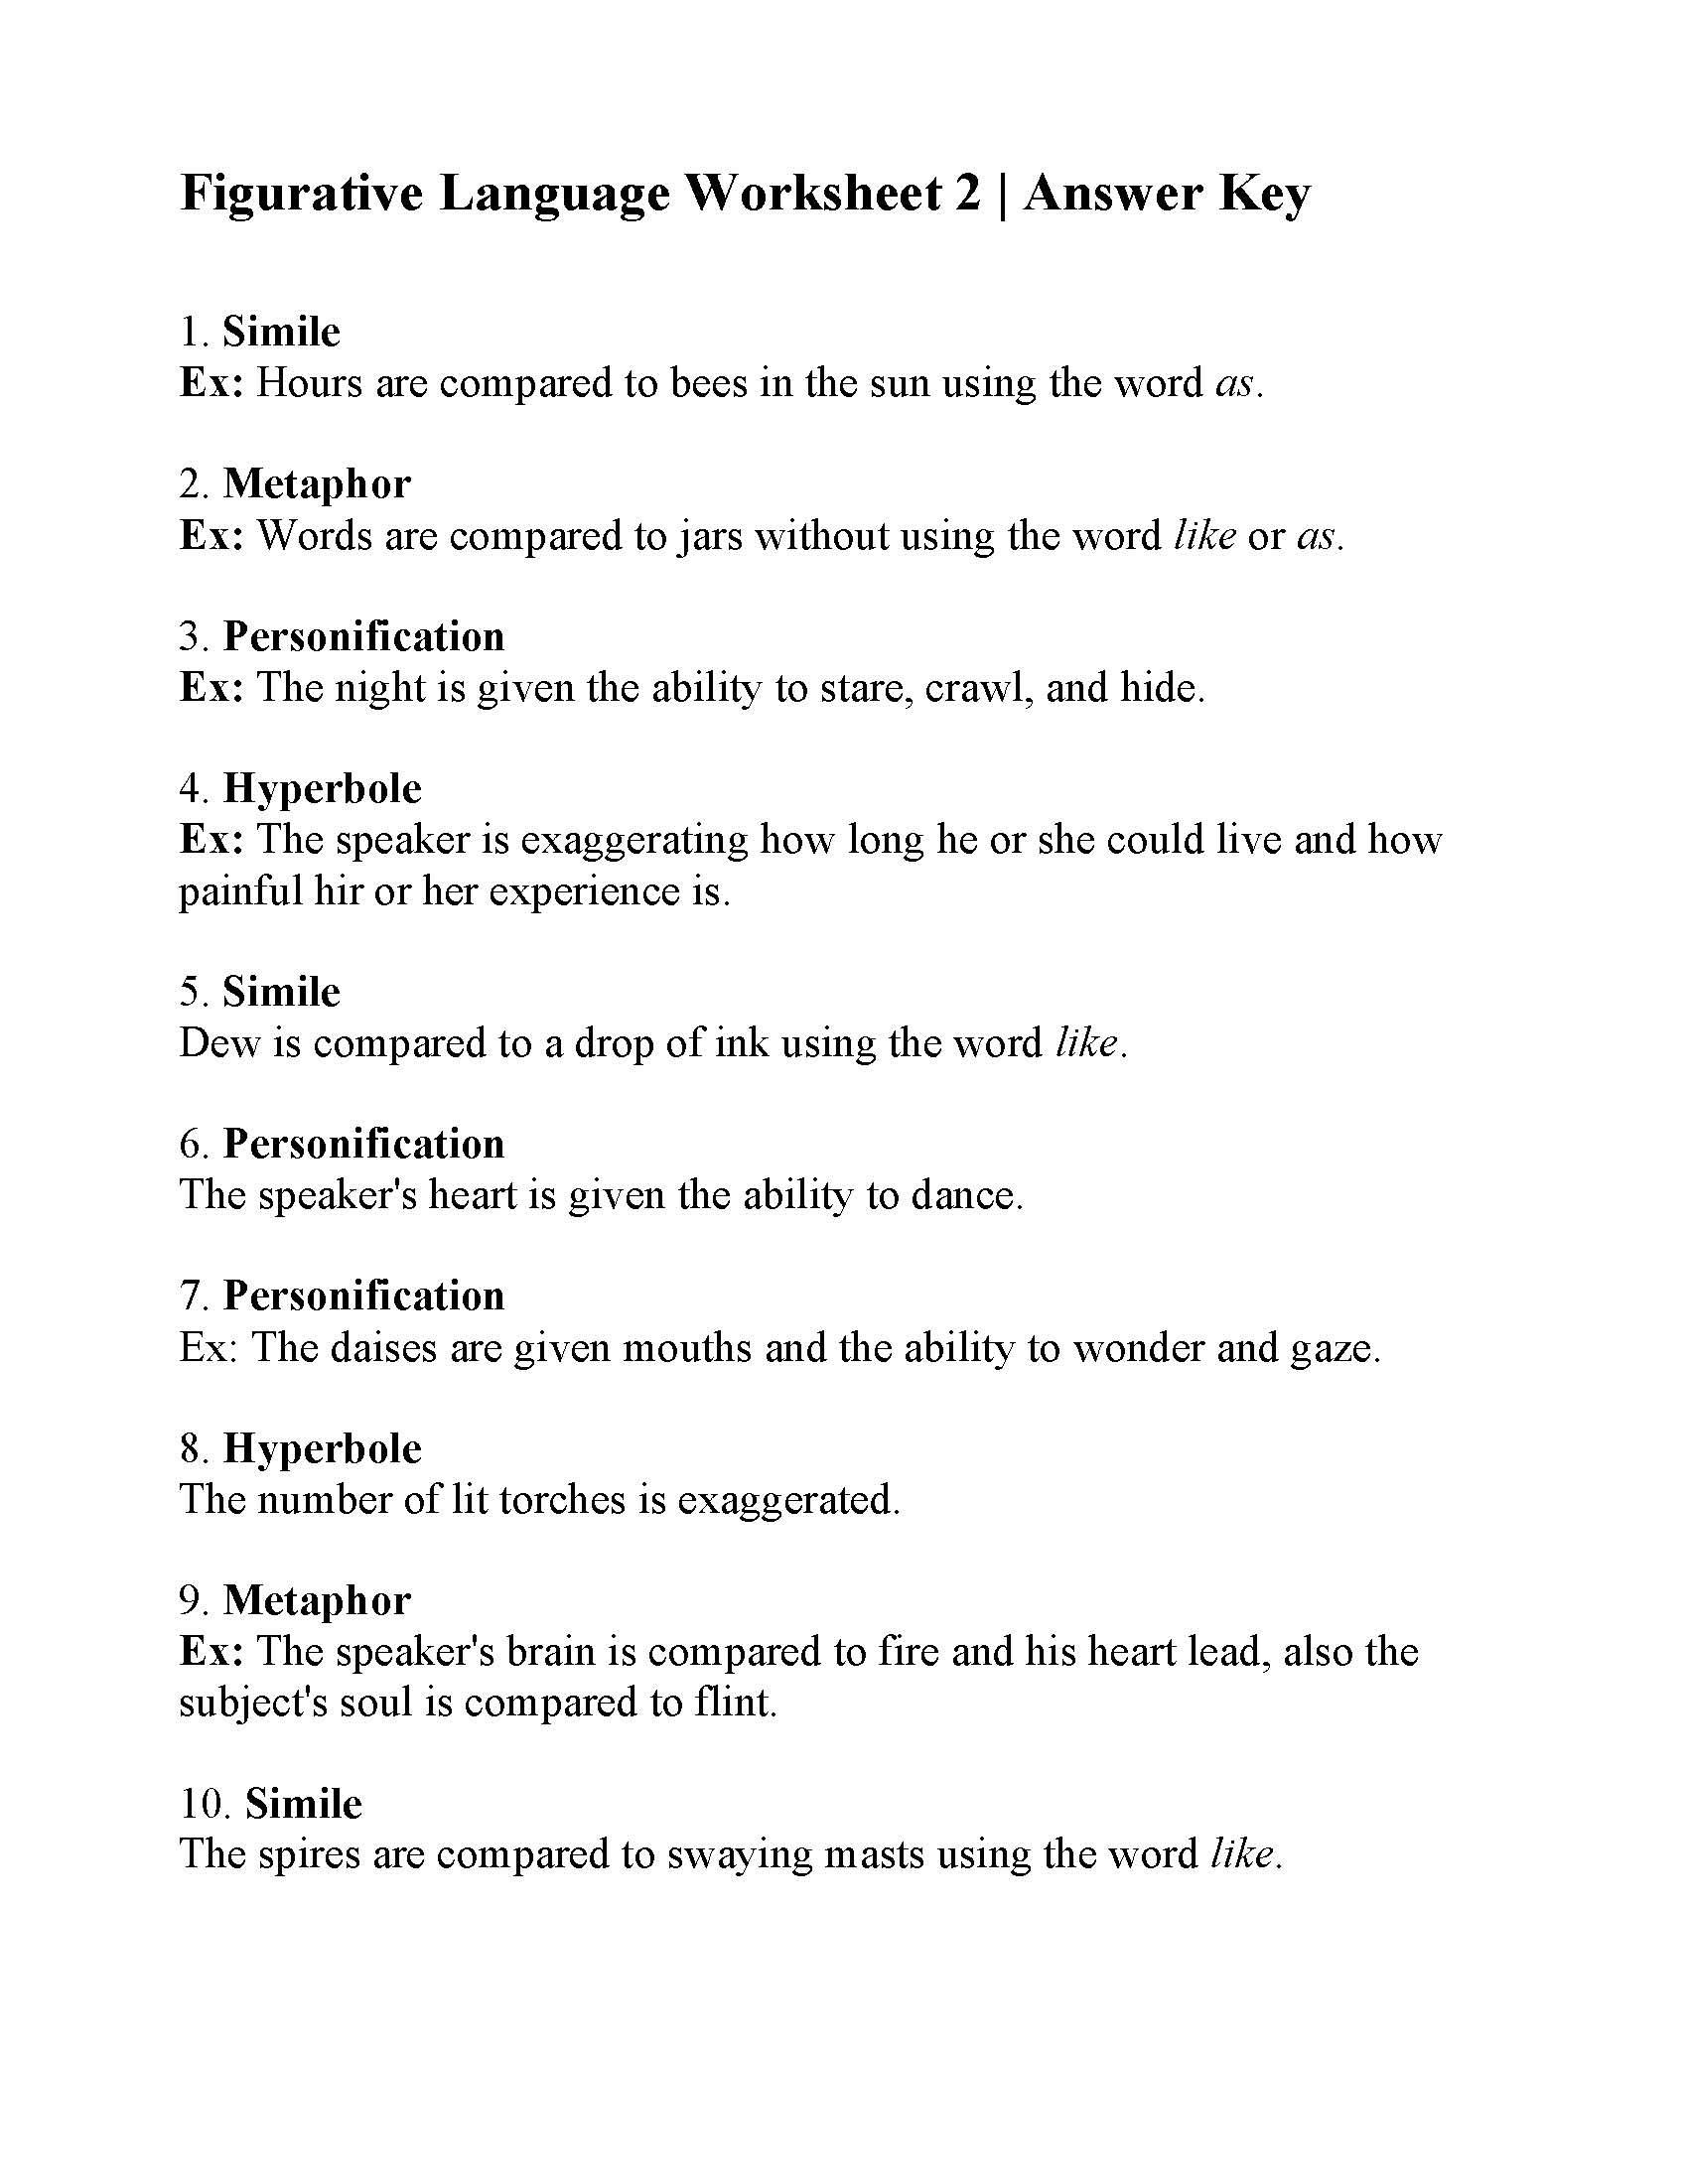 Personification Worksheets 6th Grade This is the Answer Key for the Figurative Language Worksheet